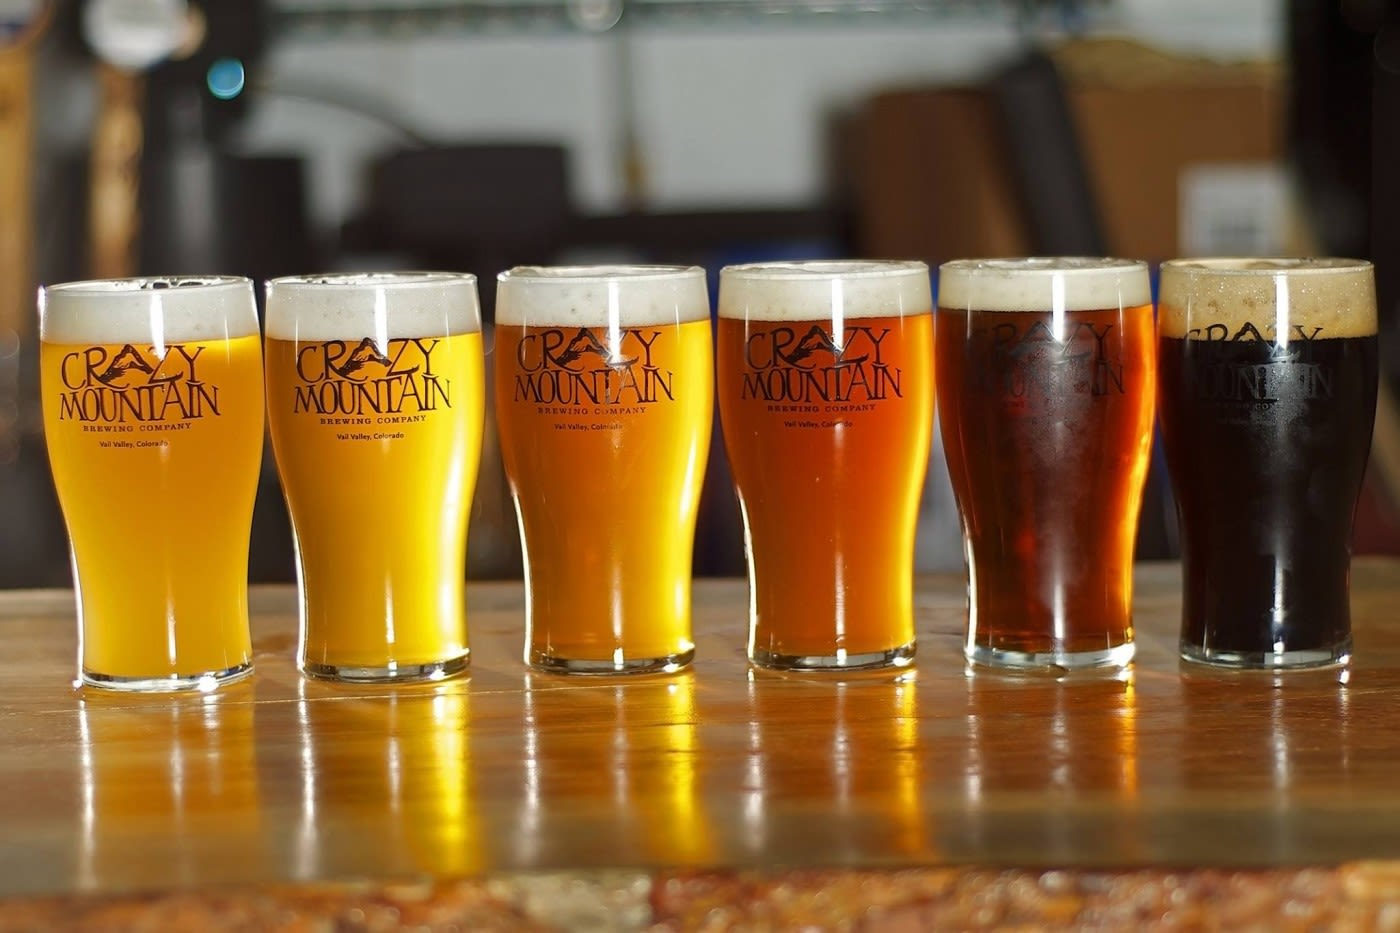 Crazy mountain brewery tap takeover pint night   denver bicycle cafe tlkw9n